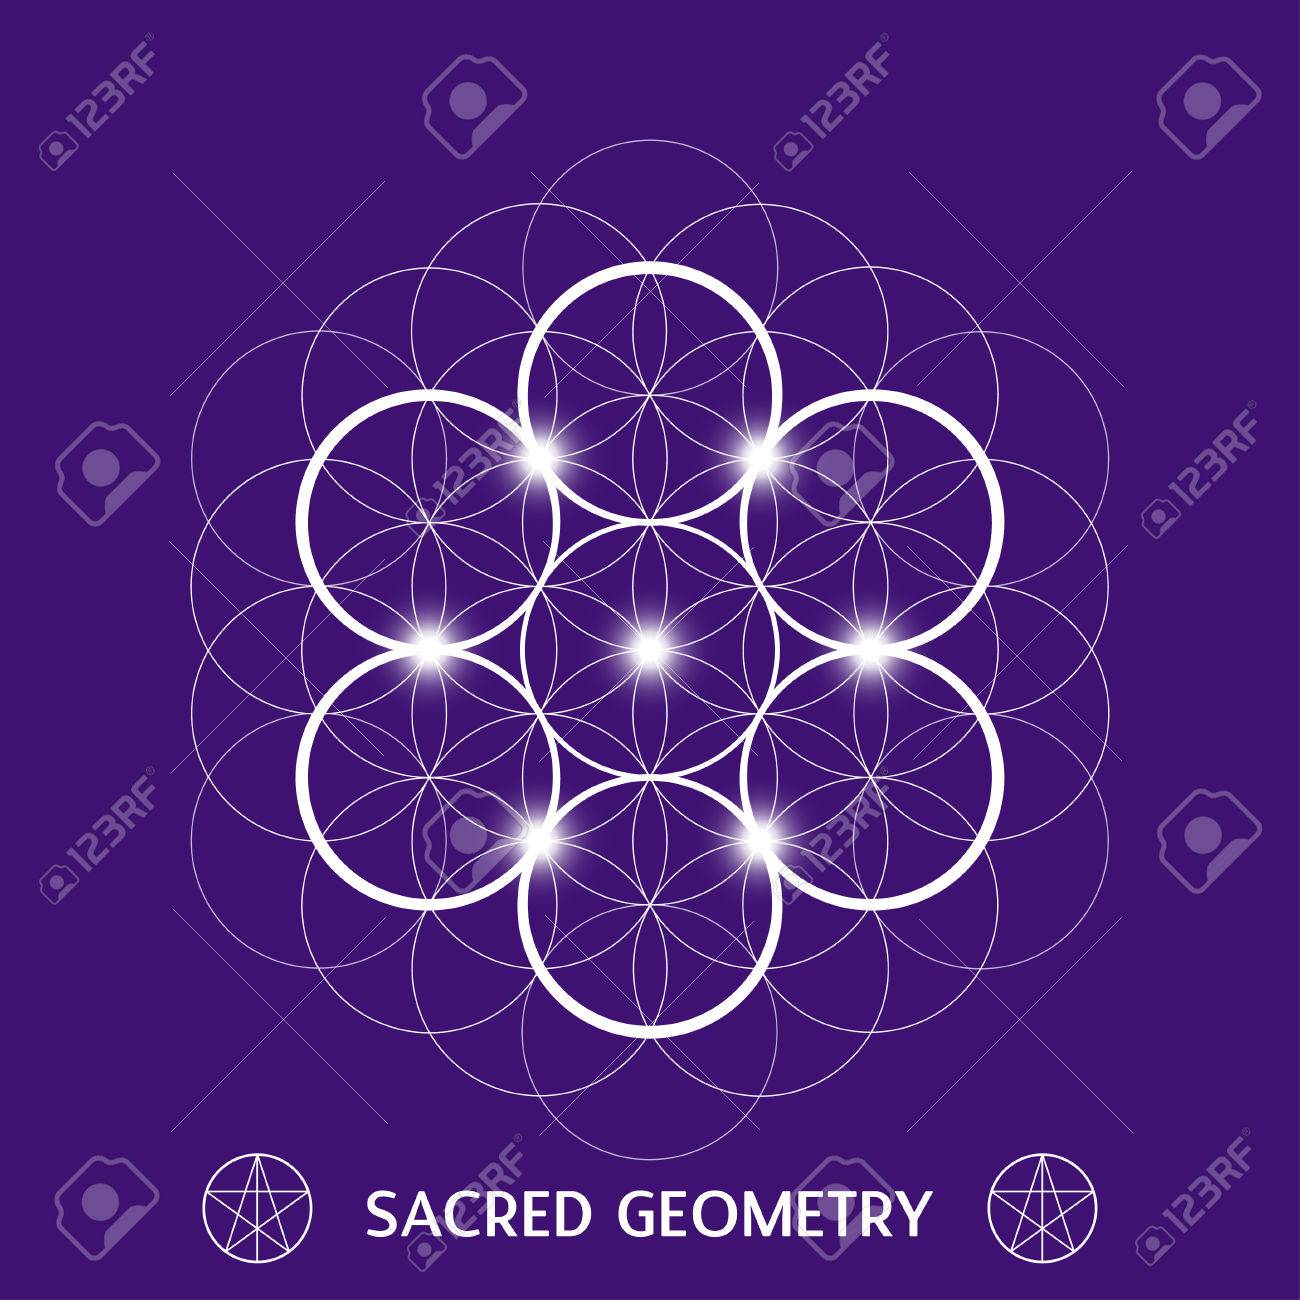 Flower Of Life Symbol Sacred Geometry Vector Illustration Royalty